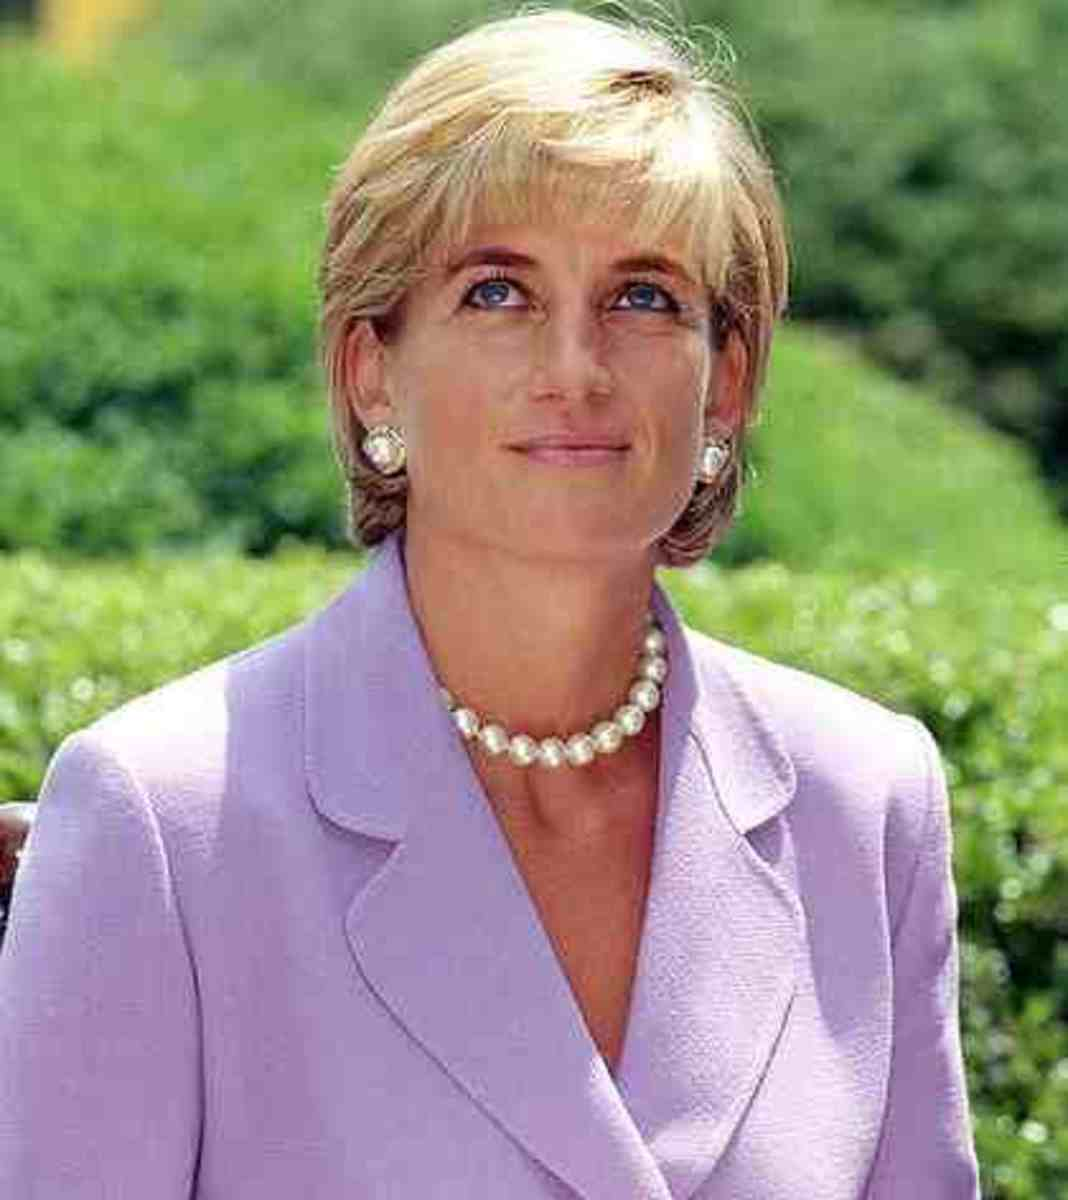 Princess Diana Public Domain